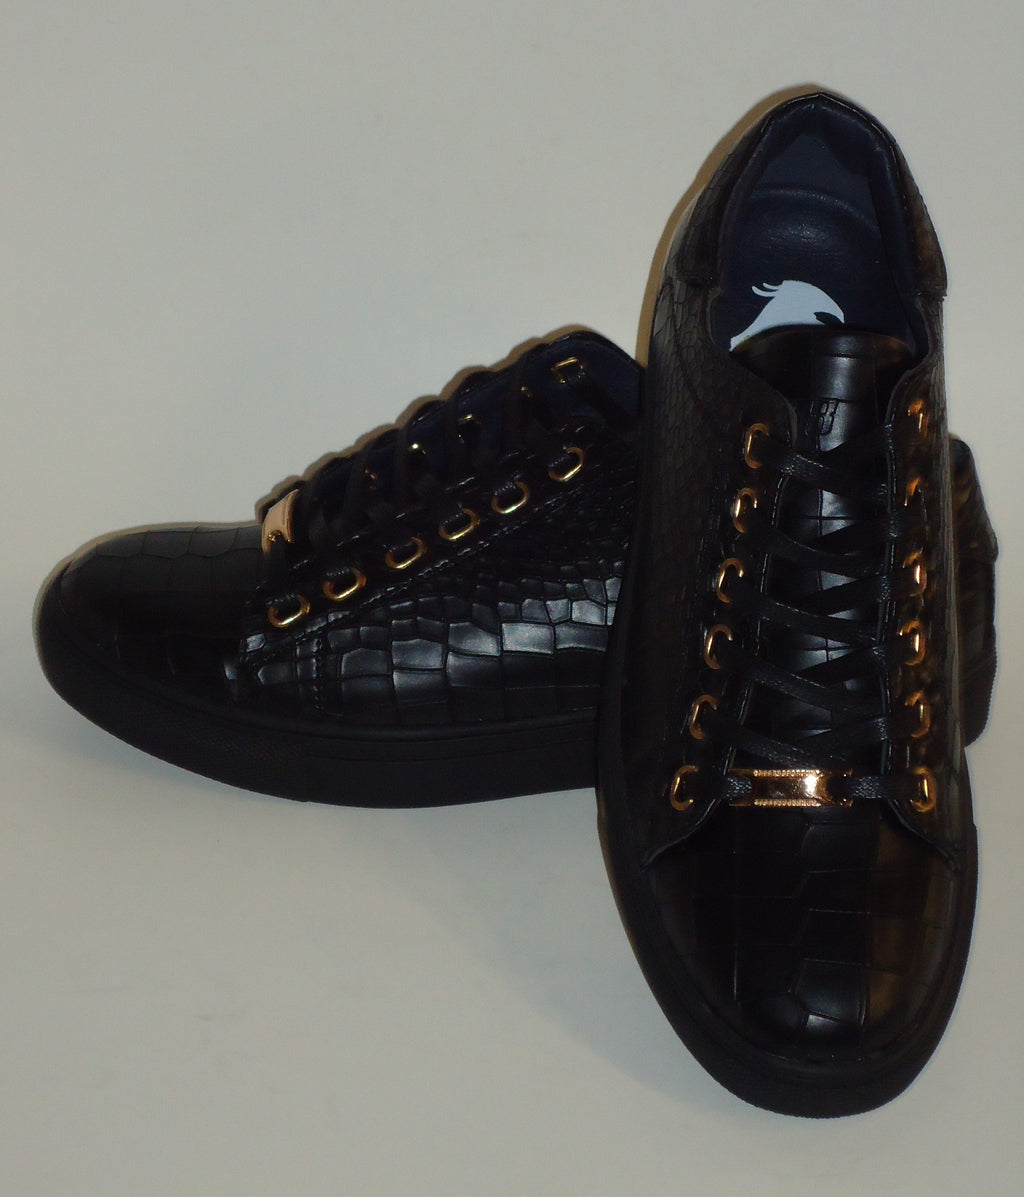 Mens Cool Black Croco Embossed Dress Sneakers Rubber Sole NY718 6730